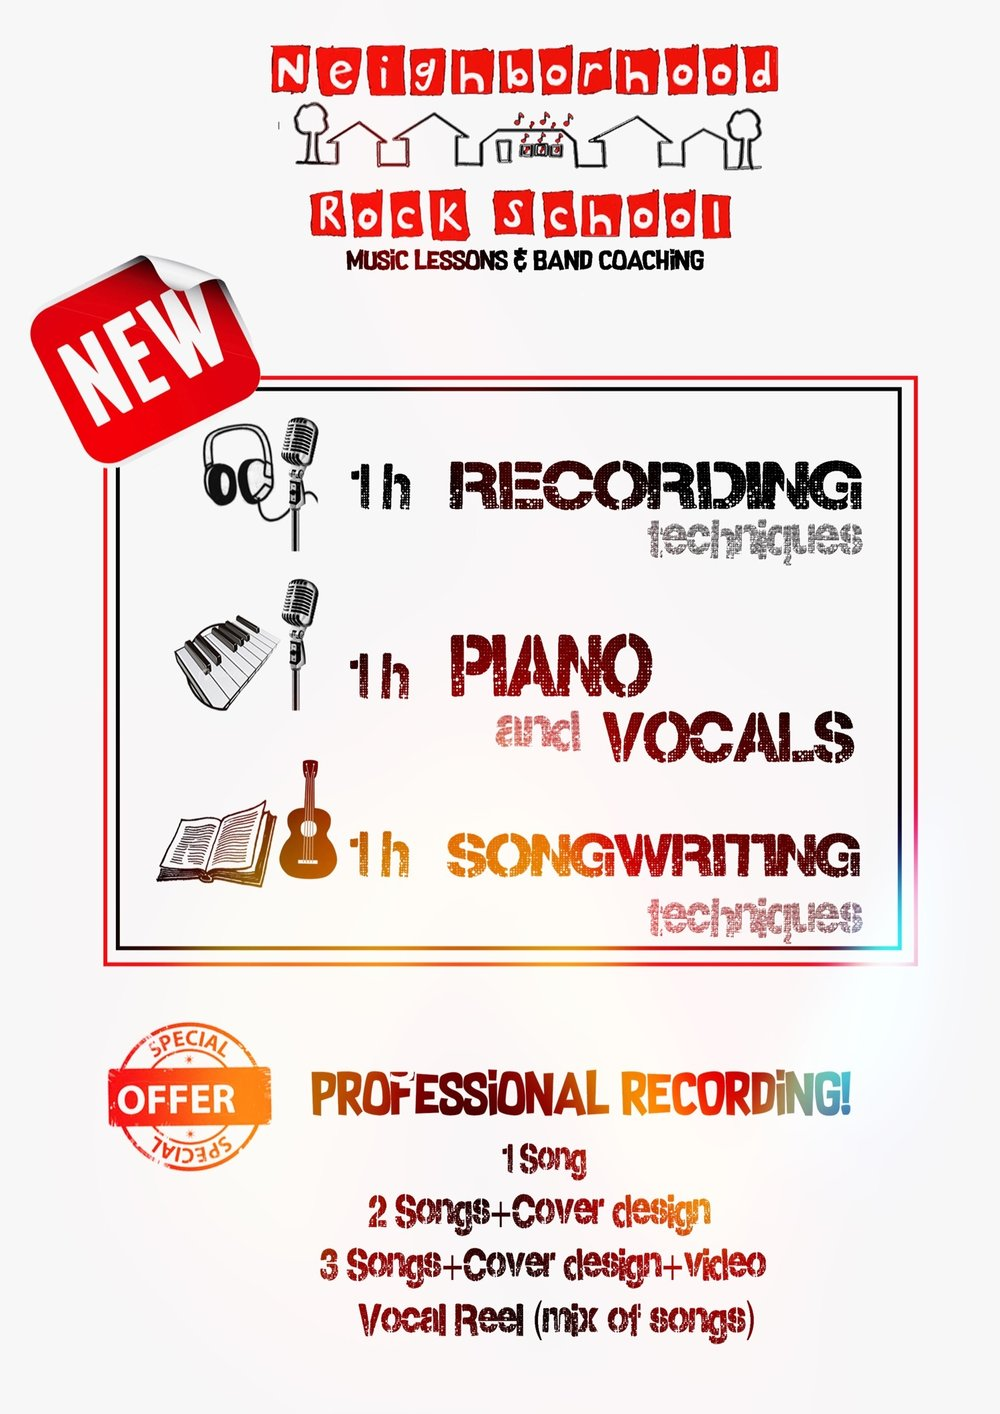 Vocal Students! - Record a professional demo of your favorite cover songs so you can show all your family!!You can also learn how to write, develop, play, record and perform your own original songs and ideas.Call Neighborhood Rock School for more info and prices!